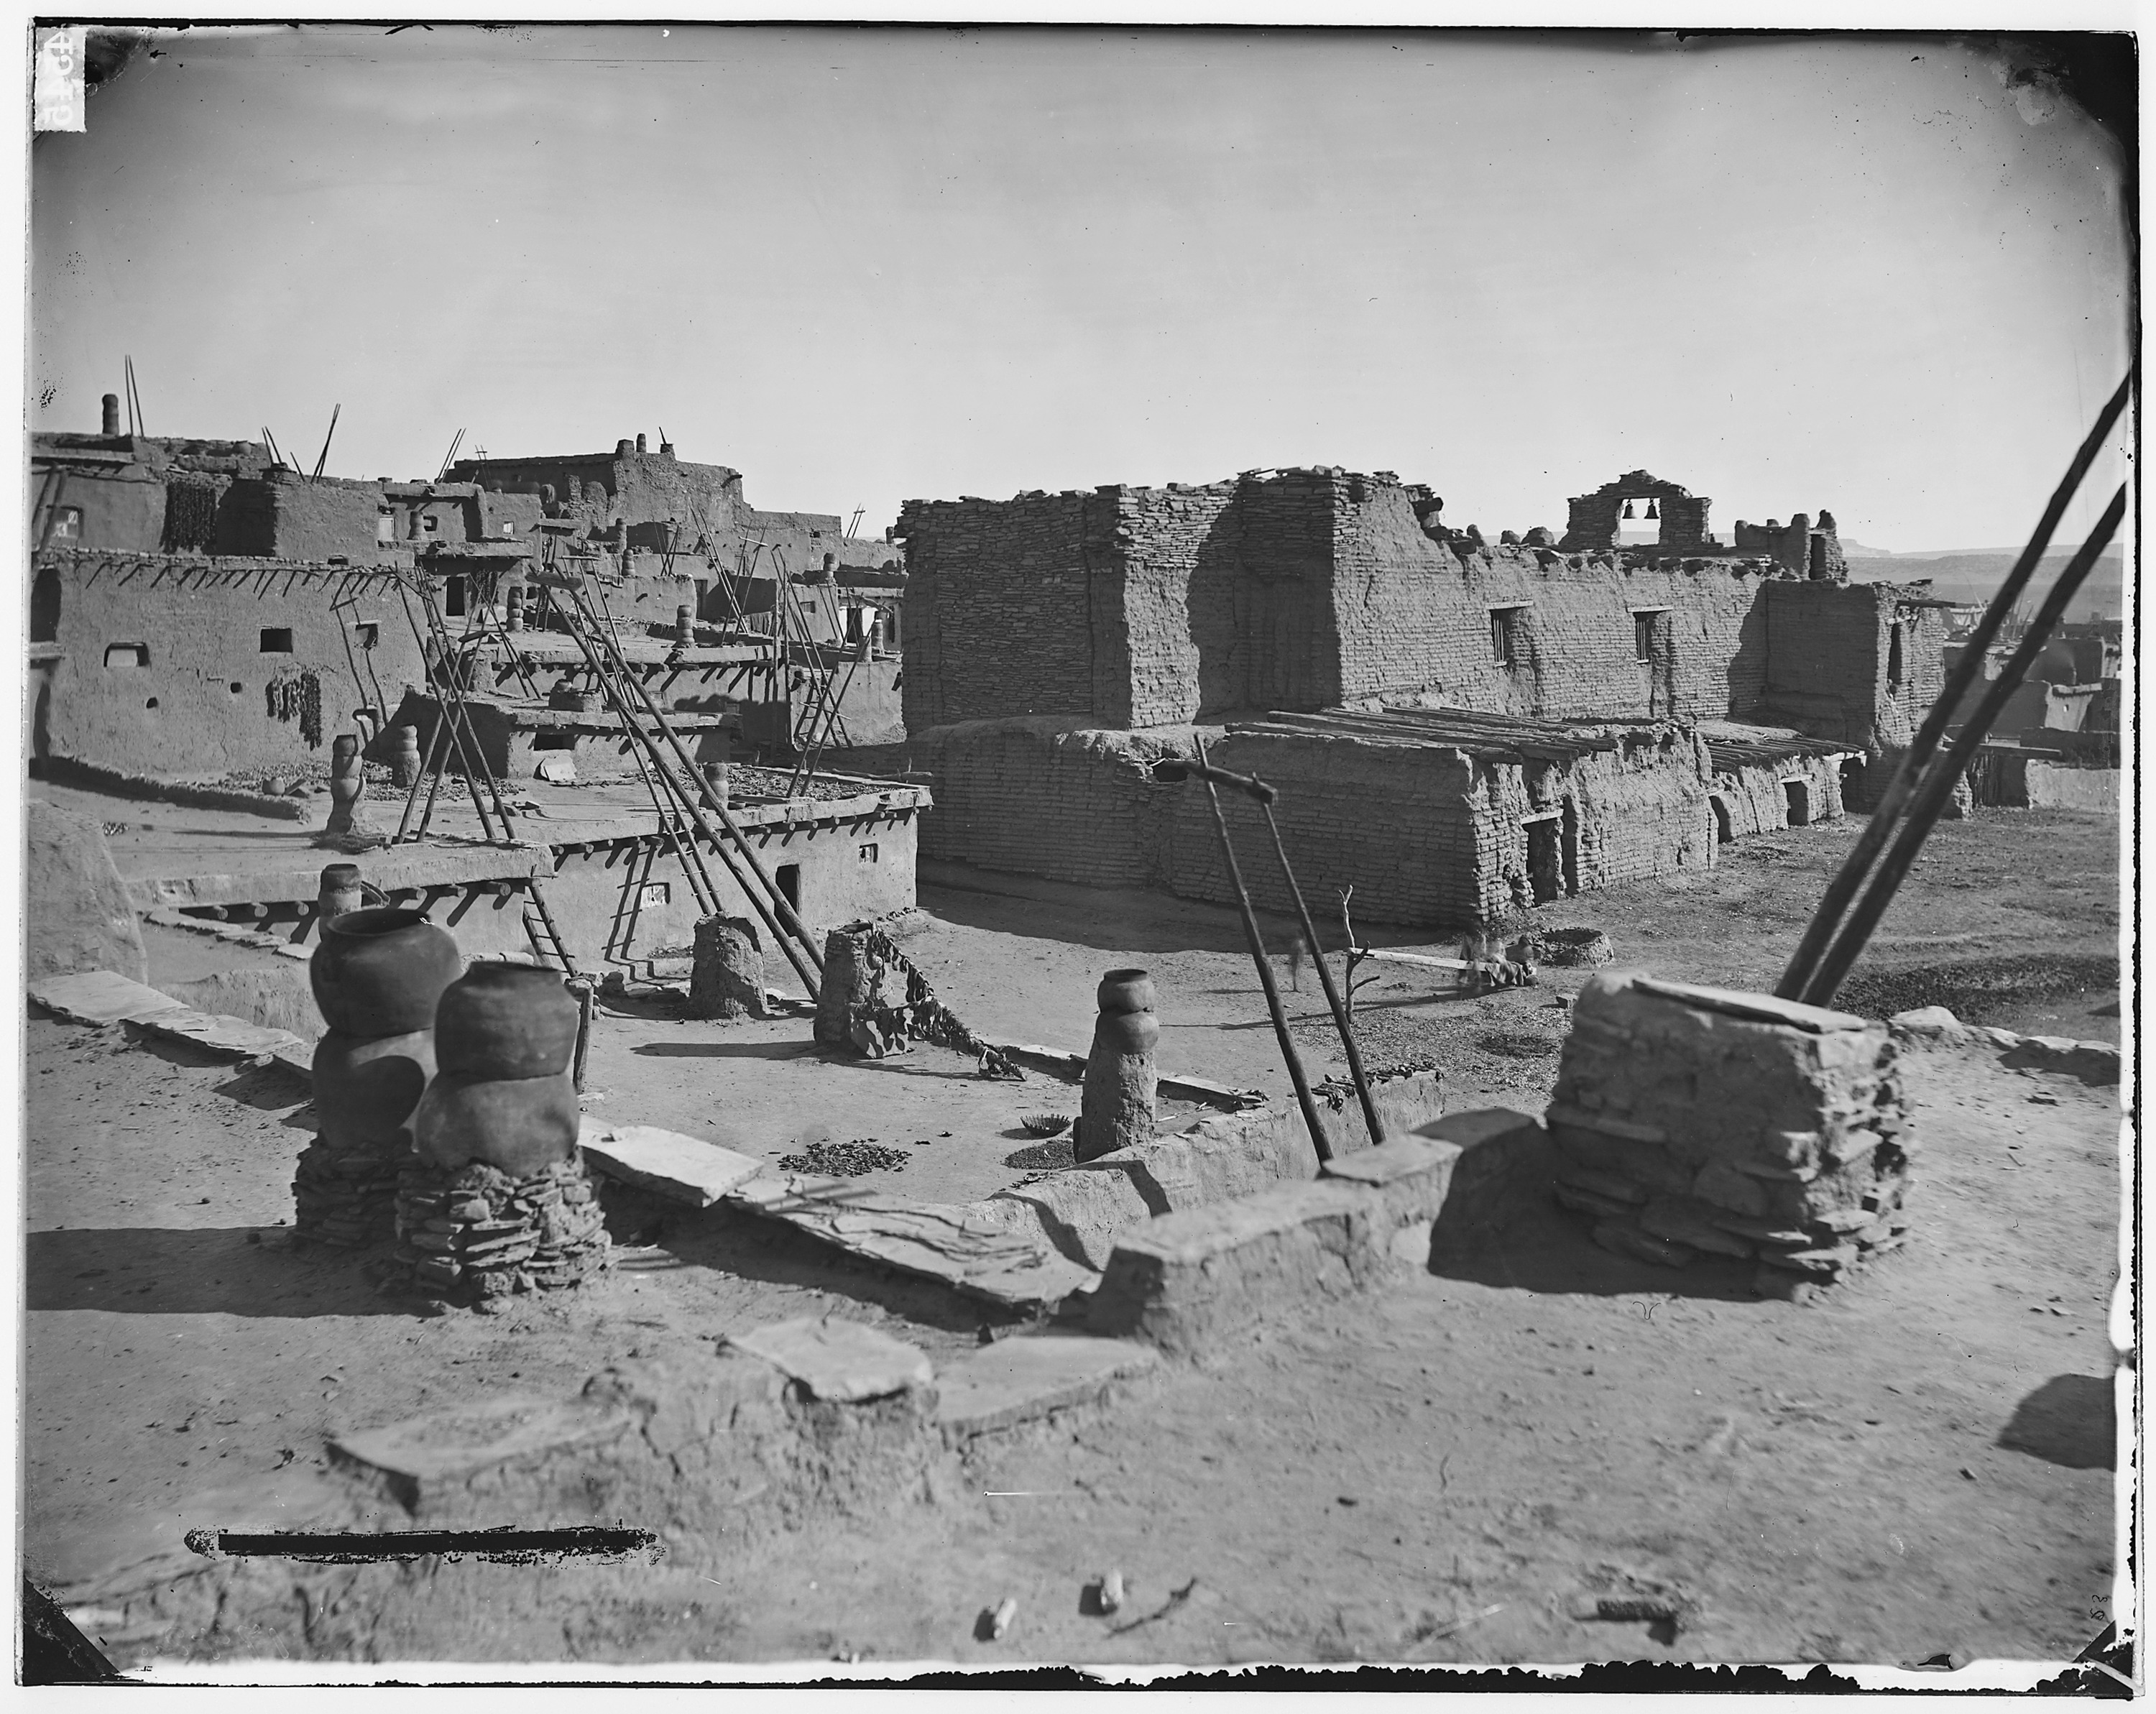 zuni dating At zuni pueblo, kiva ceremonies serve as a way to learn about origins, lifeways, and history—but the six kivas at zuni are at risk three are in disrepair and three.